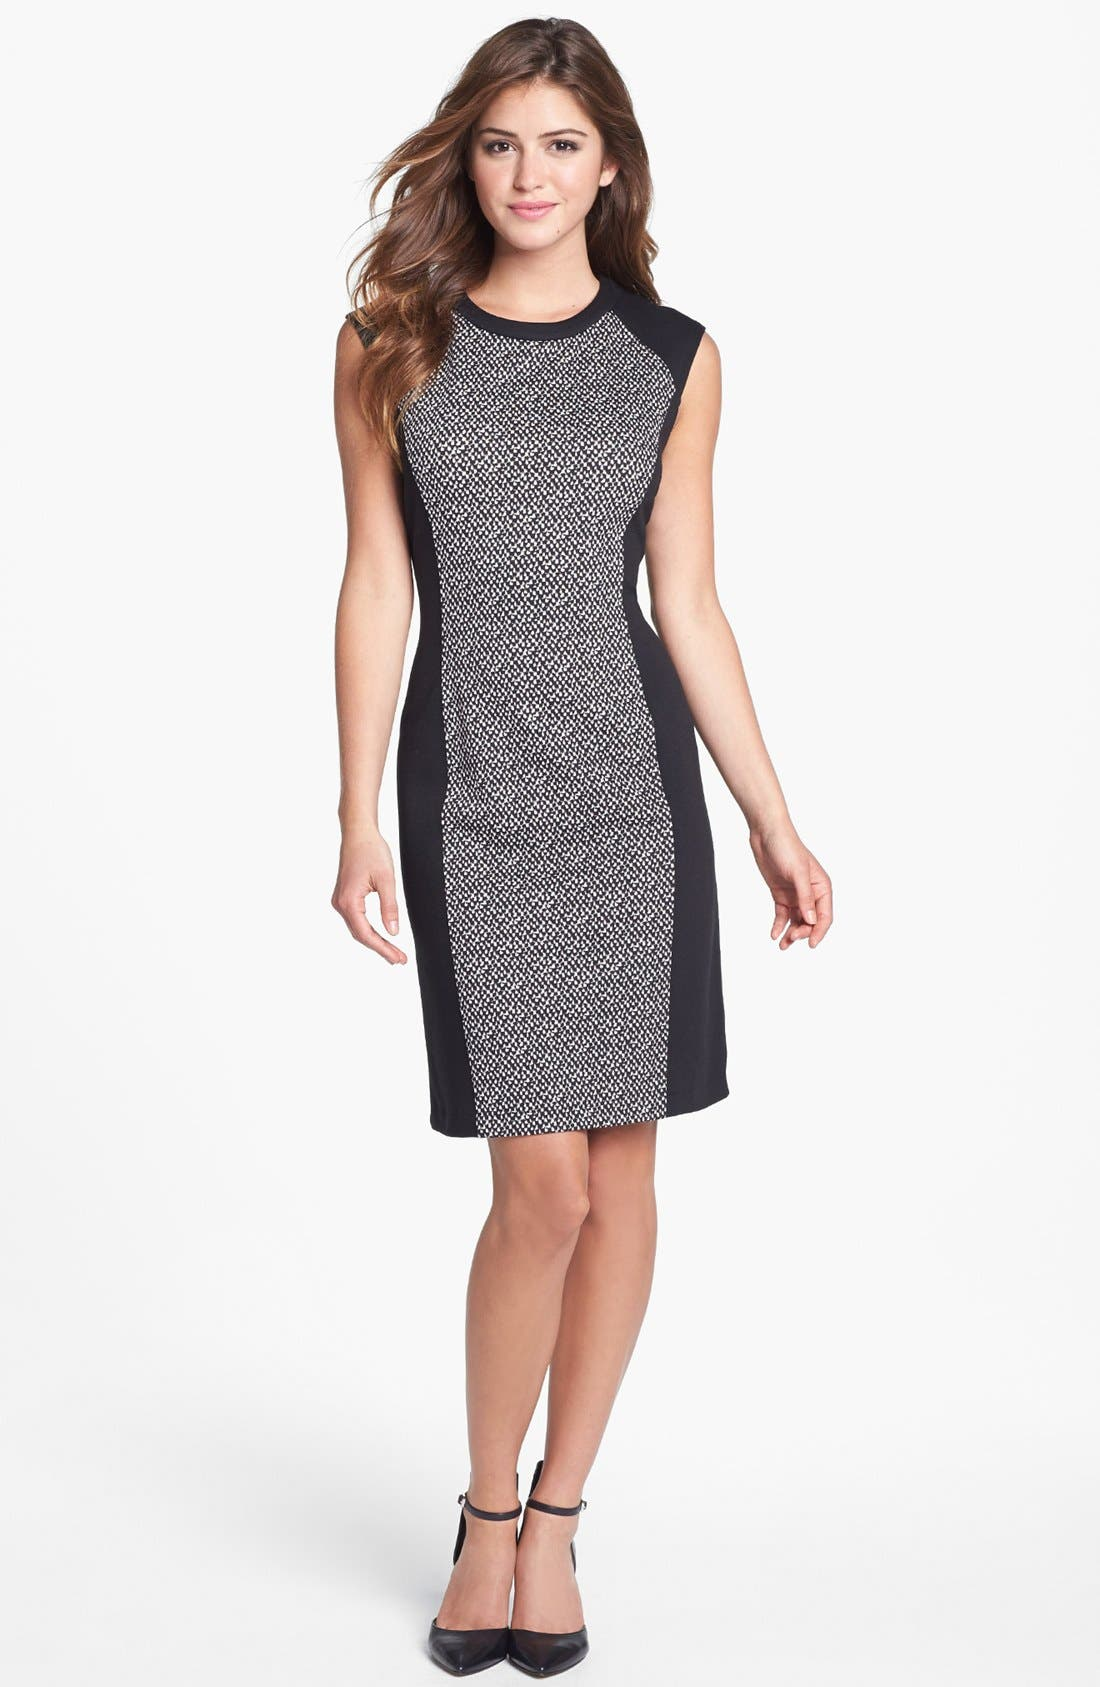 Alternate Image 1 Selected - Calvin Klein Colorblock Print Ponte Knit Dress (Online Only)